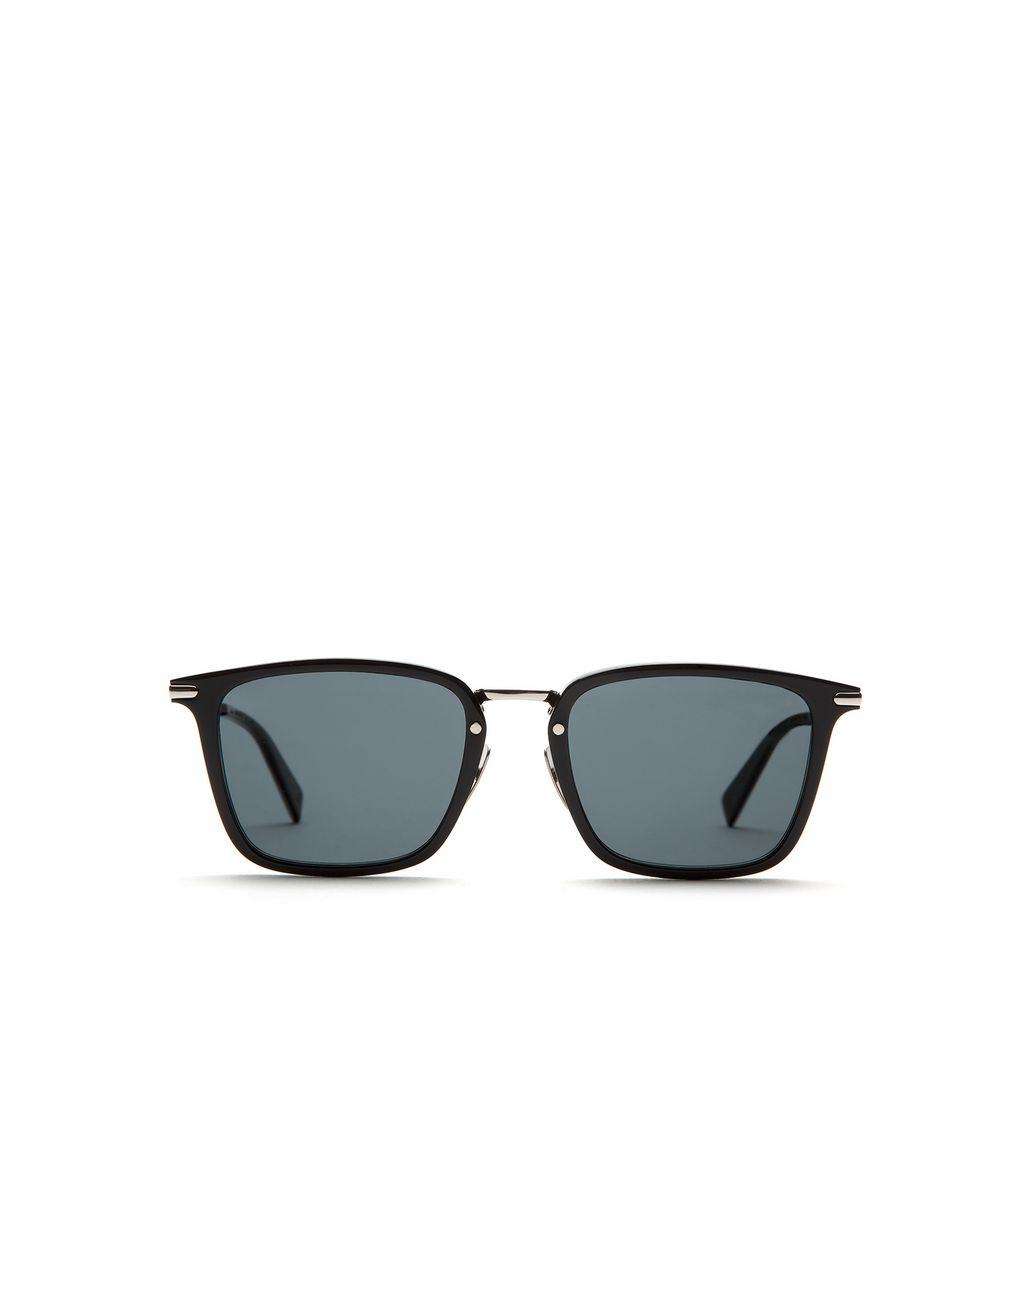 BRIONI Shiny Black Squared Sunglasses with Grey Lenses  Sunglasses [*** pickupInStoreShippingNotGuaranteed_info ***] f